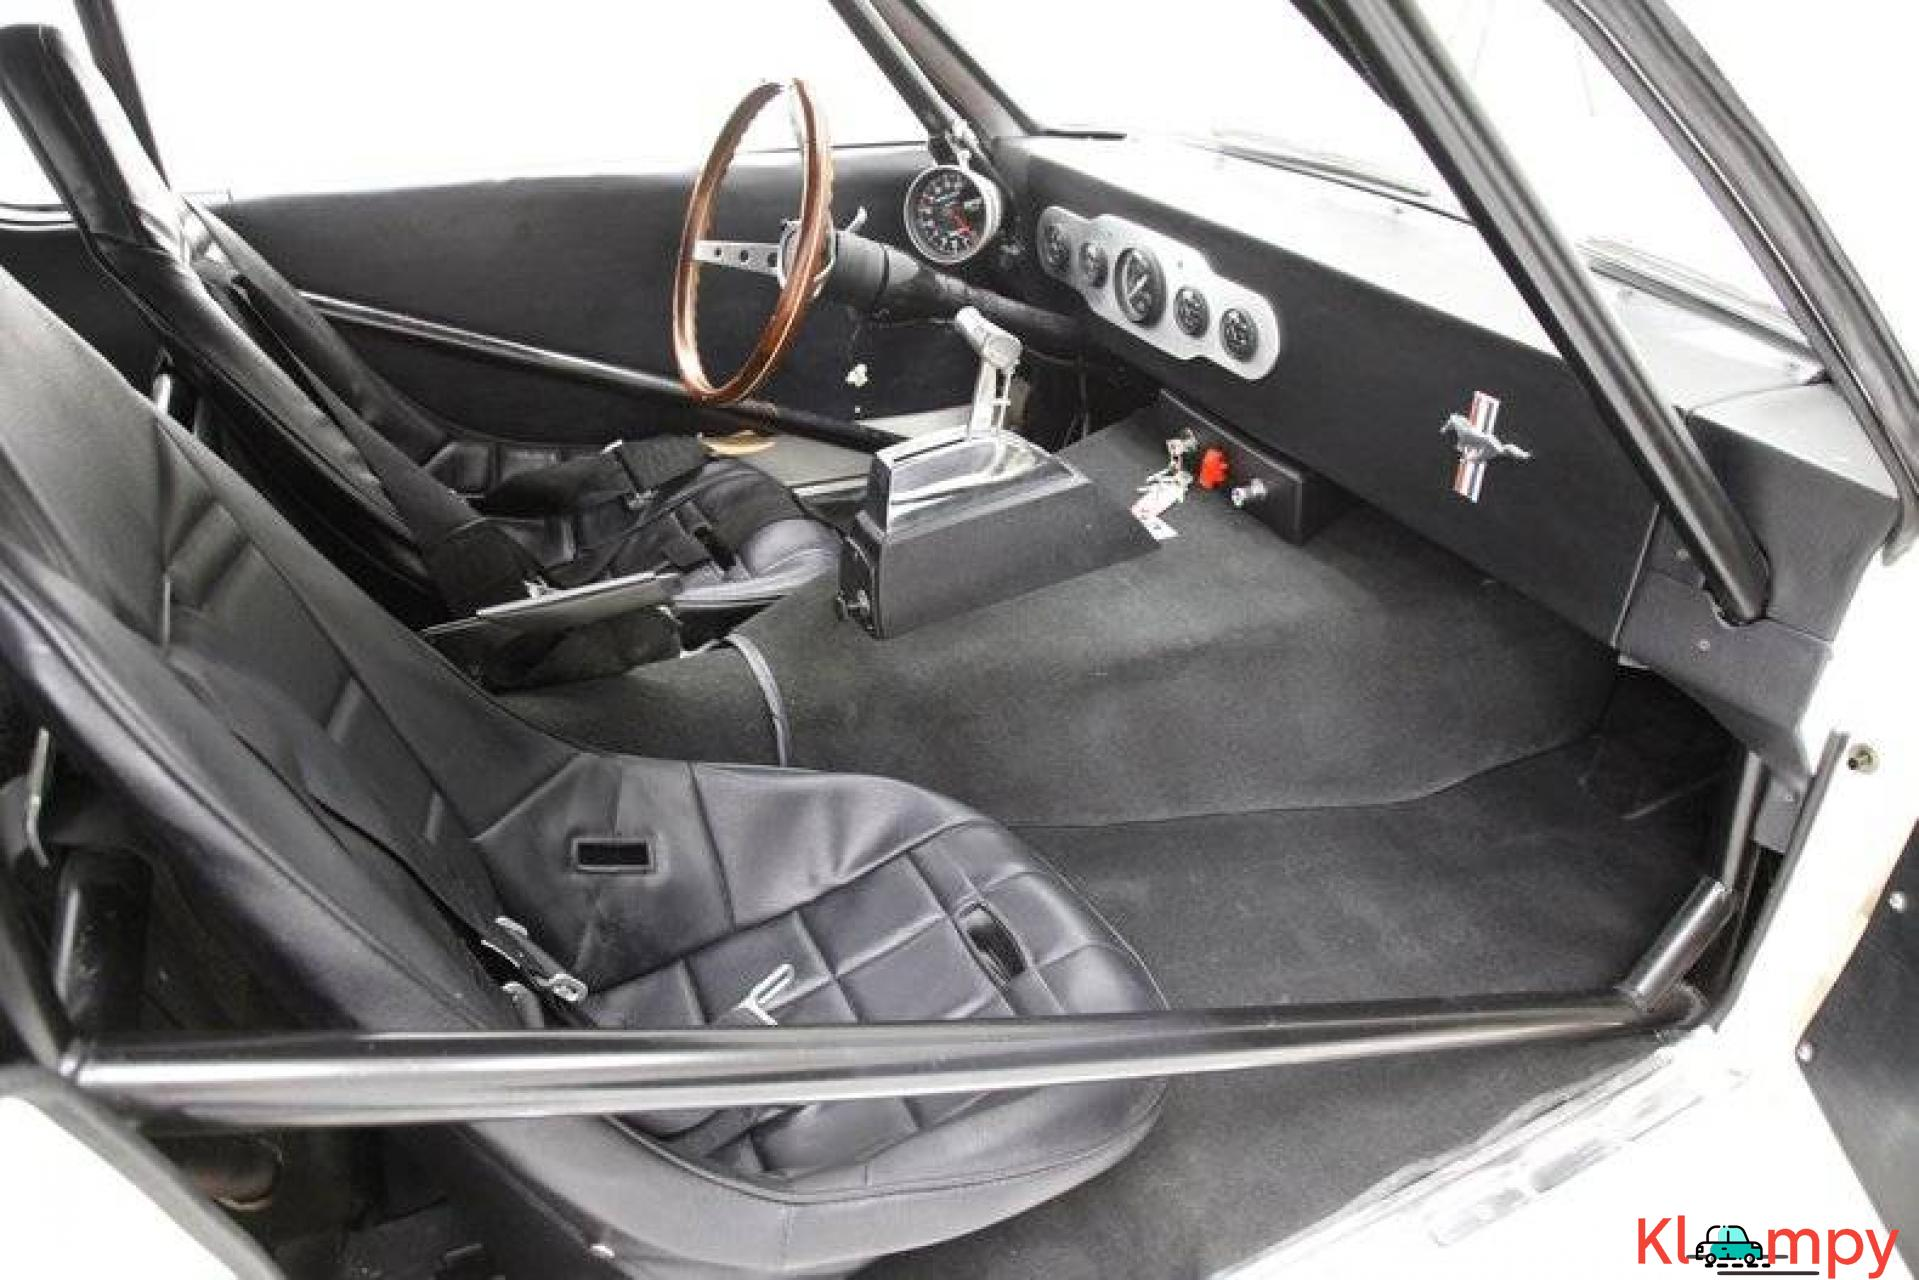 1966 Ford Mustang Coupe 302ci V8 White - 16/20